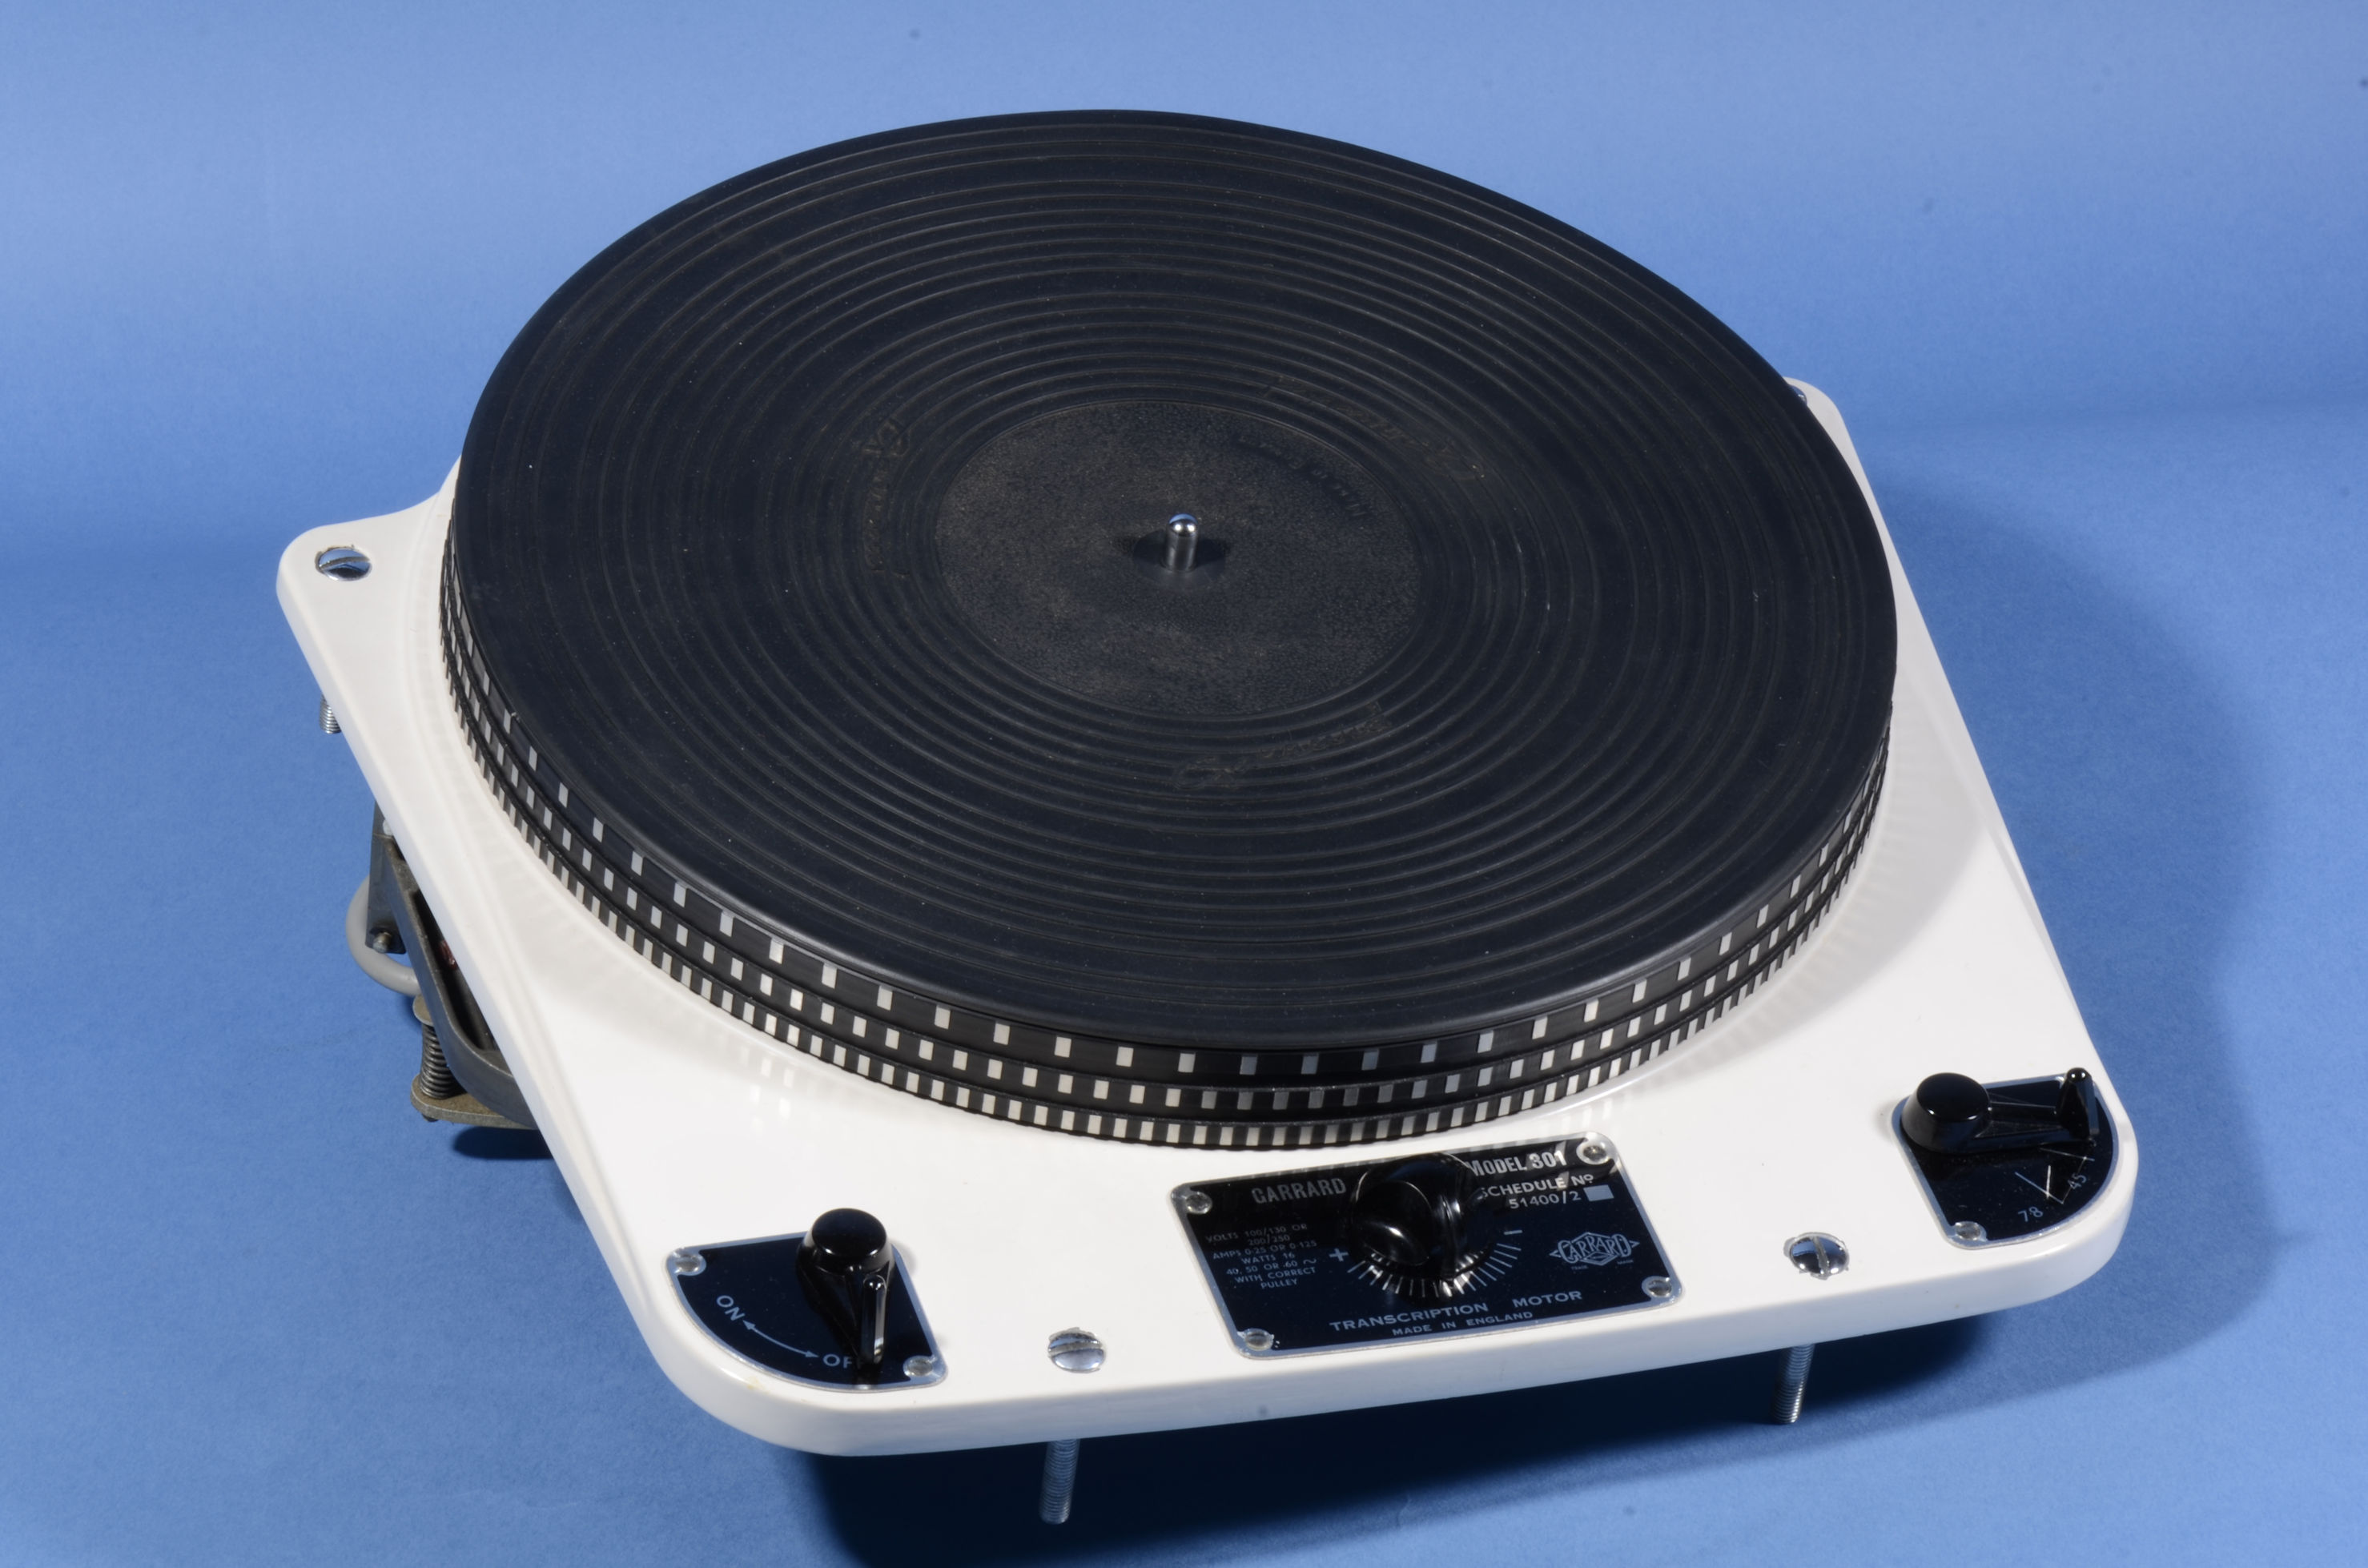 Garrard 301 transcription turntable early schedule 2 oil bearing version